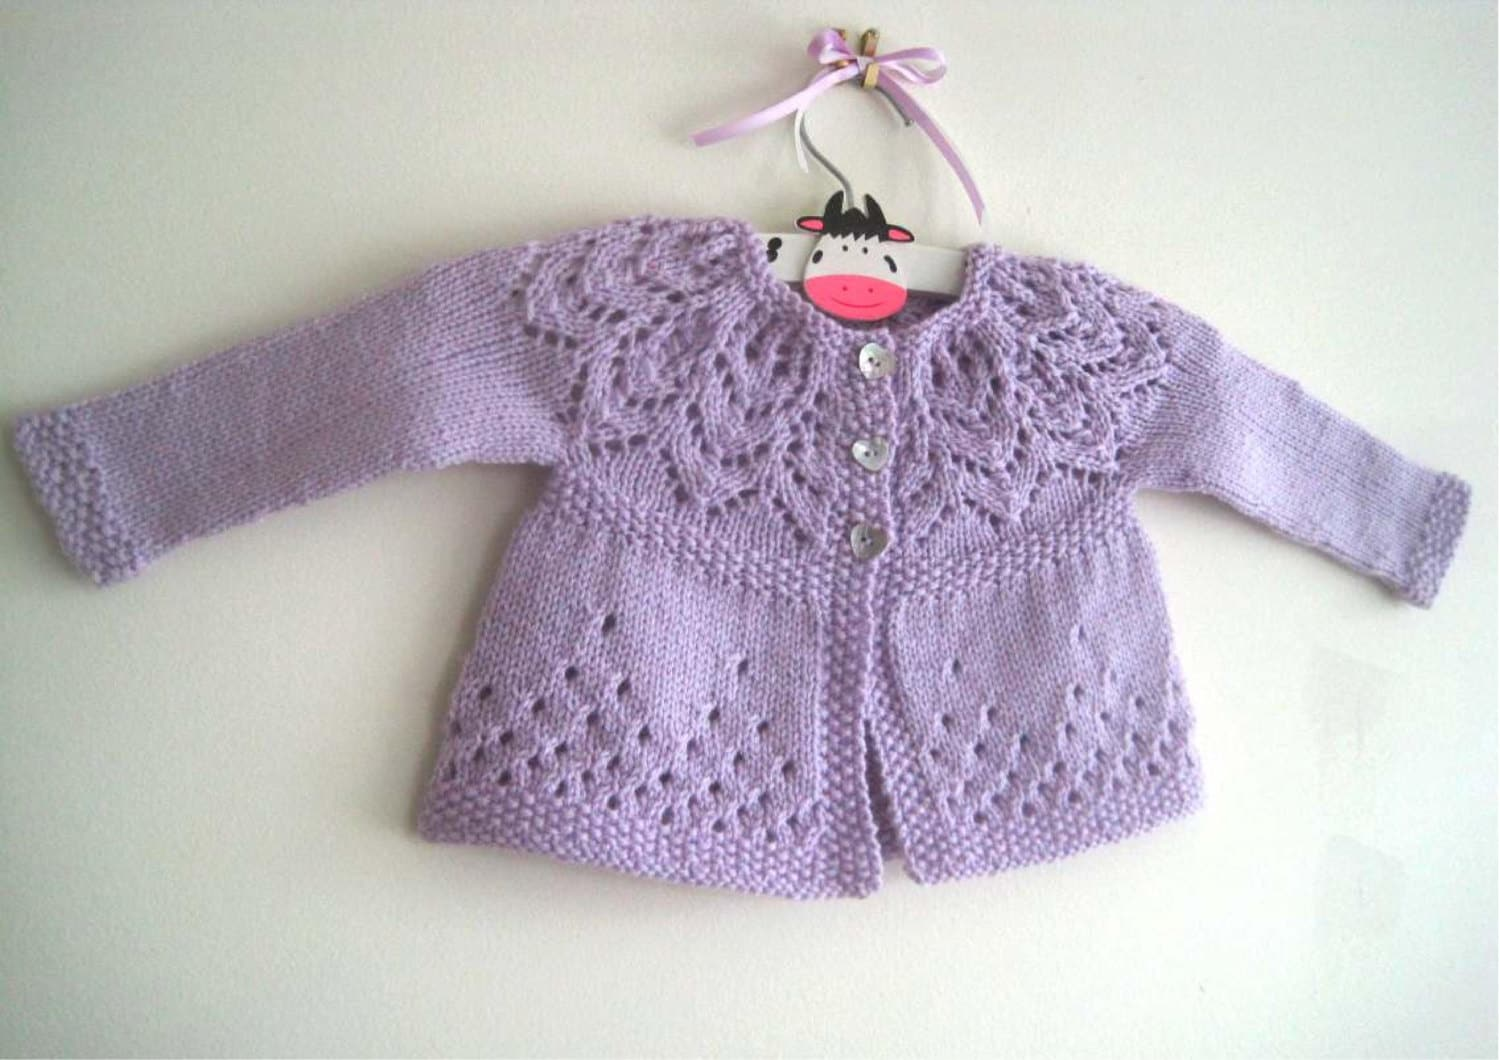 Knitting Pattern For Age : Evie Cardi Knitting Pattern Baby girl to age 6 cardigan